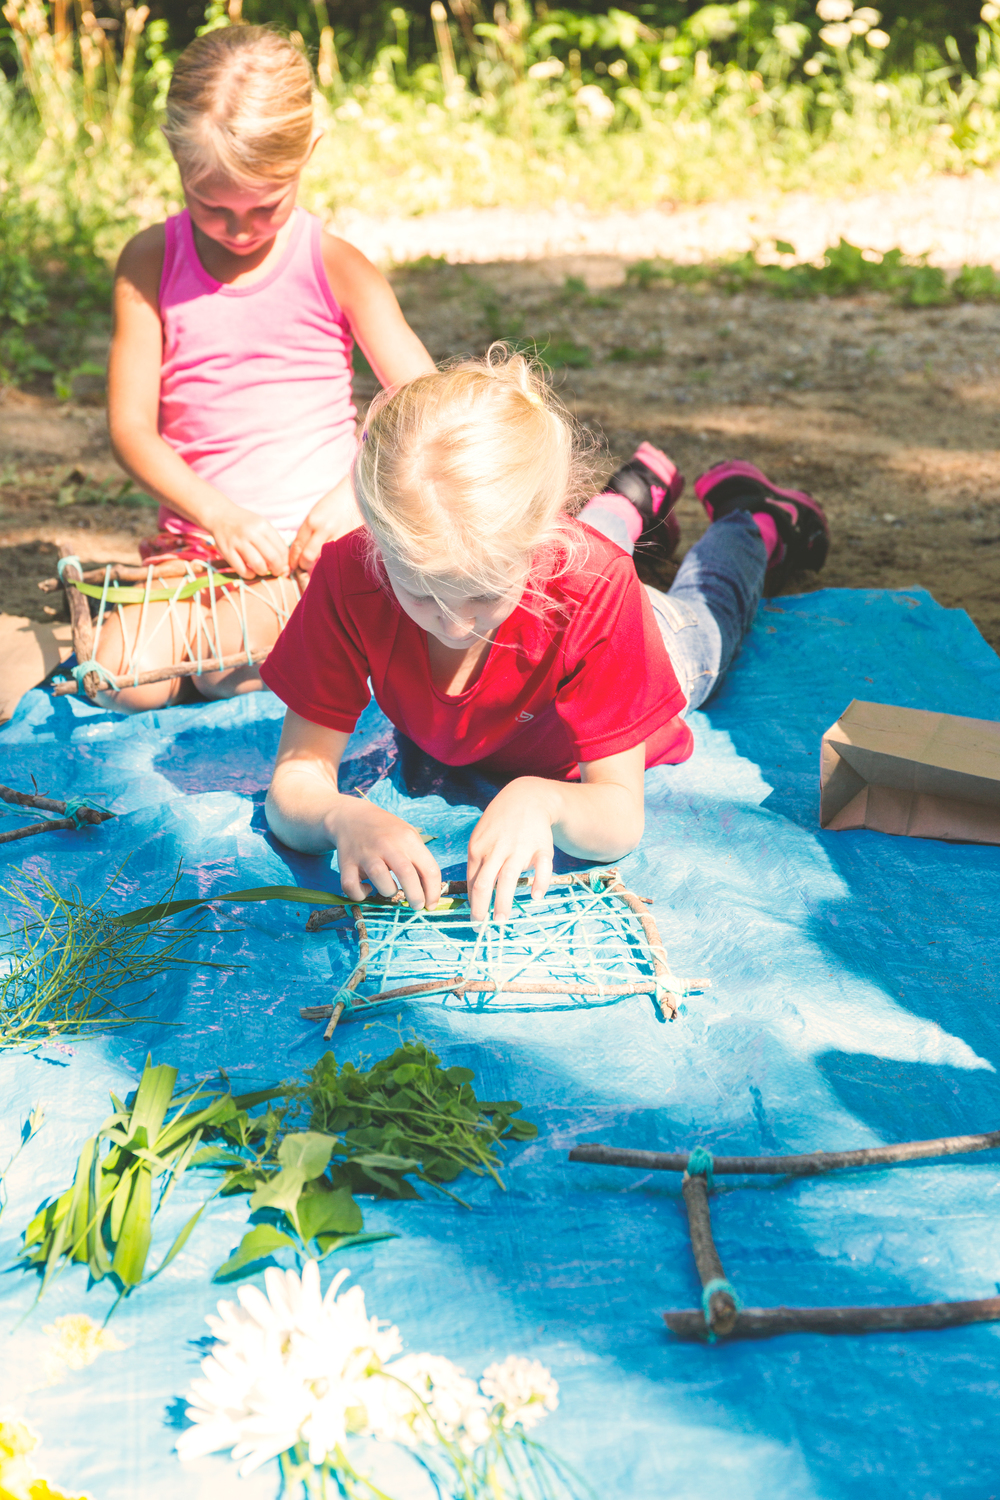 7/13/16 Nature Weaving class through Little Traverse Conservancy at the McCune Preserve. One of my favorite classes + favorite preserves to explore. This weaving project is fun for kids and adults, especially if you enjoy collecting (hording?) found objects, like I do. The look of the weavings change as the leaves and petals dry out. Try hanging them in a window or against a wall. Materials: 4 sticks (tied together at corners), yarn (looped around sticks and crisscrossed), found objects for weaving into the yarn (feathers, leaves, flowers, trash).